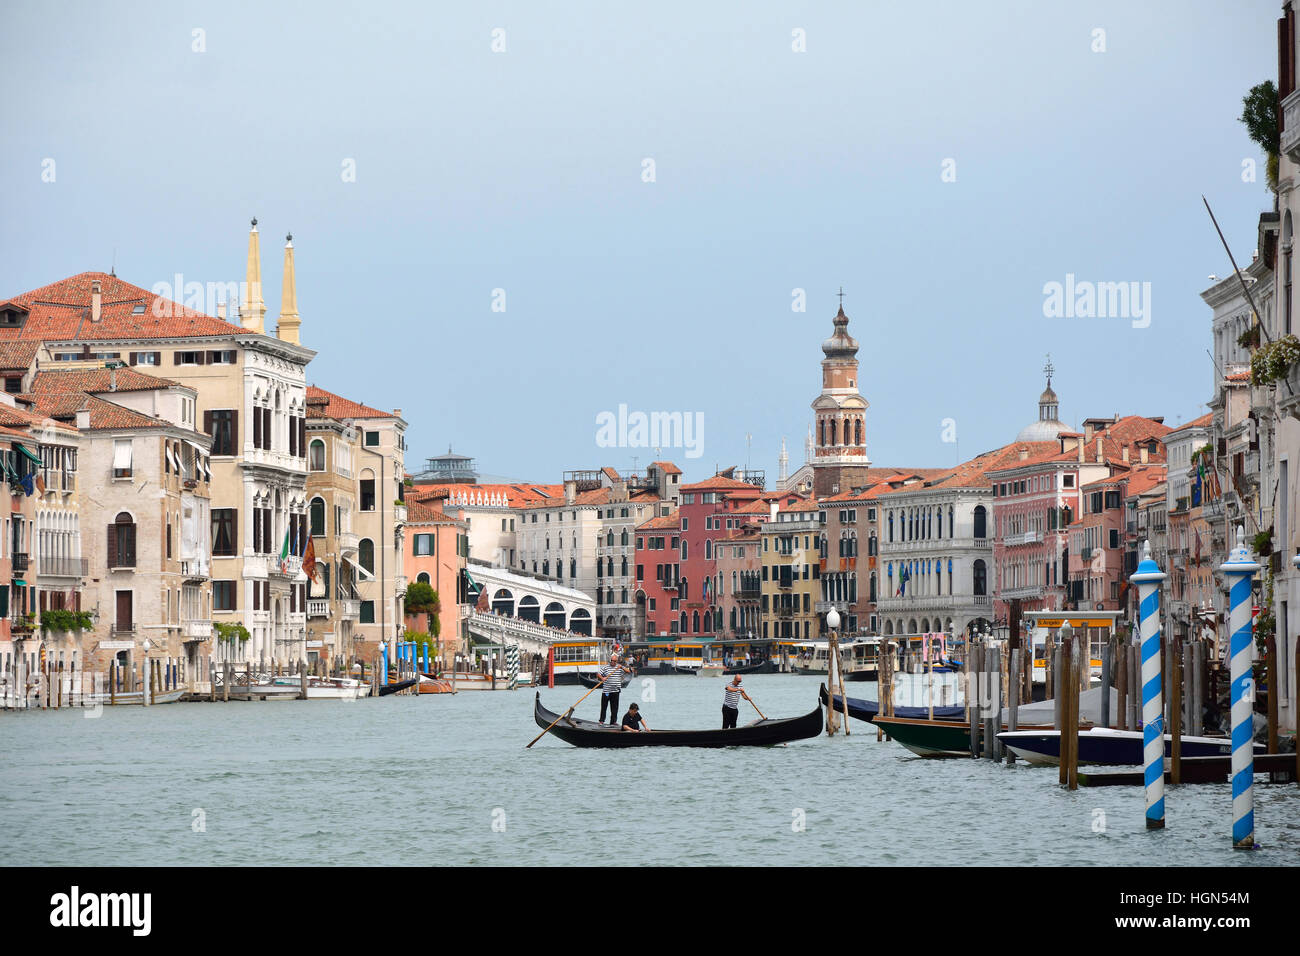 Historical Palaces at the Grand Canal of Venice in Italy. - Stock Image